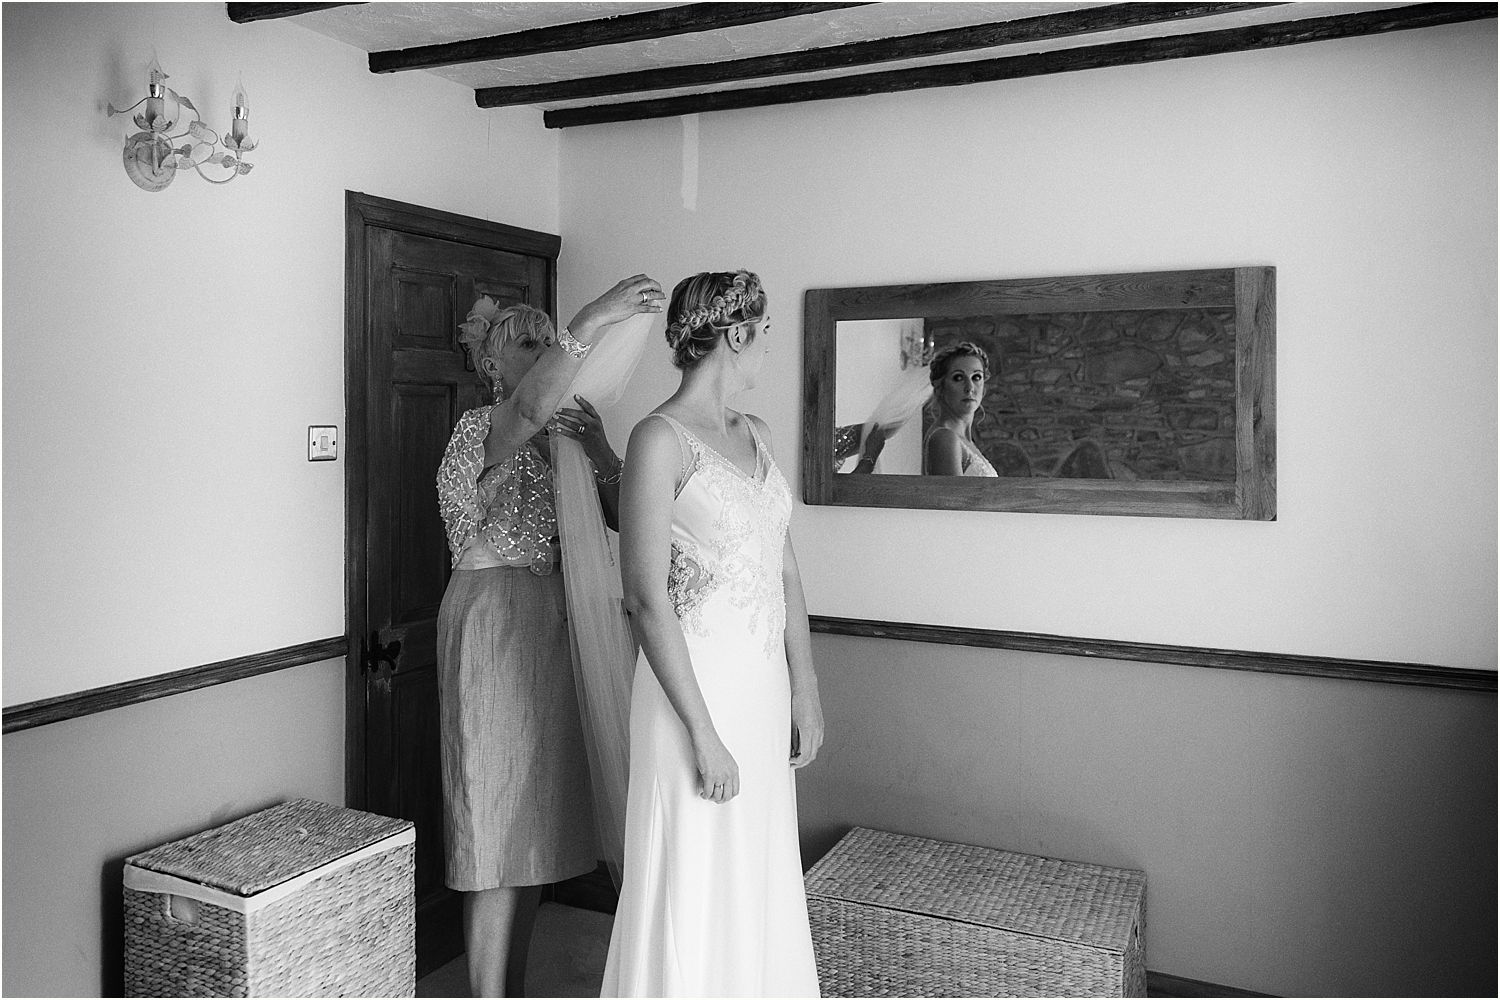 Brides mother pinning the veil in. Accessories from The Bridal Lounge in Accrington